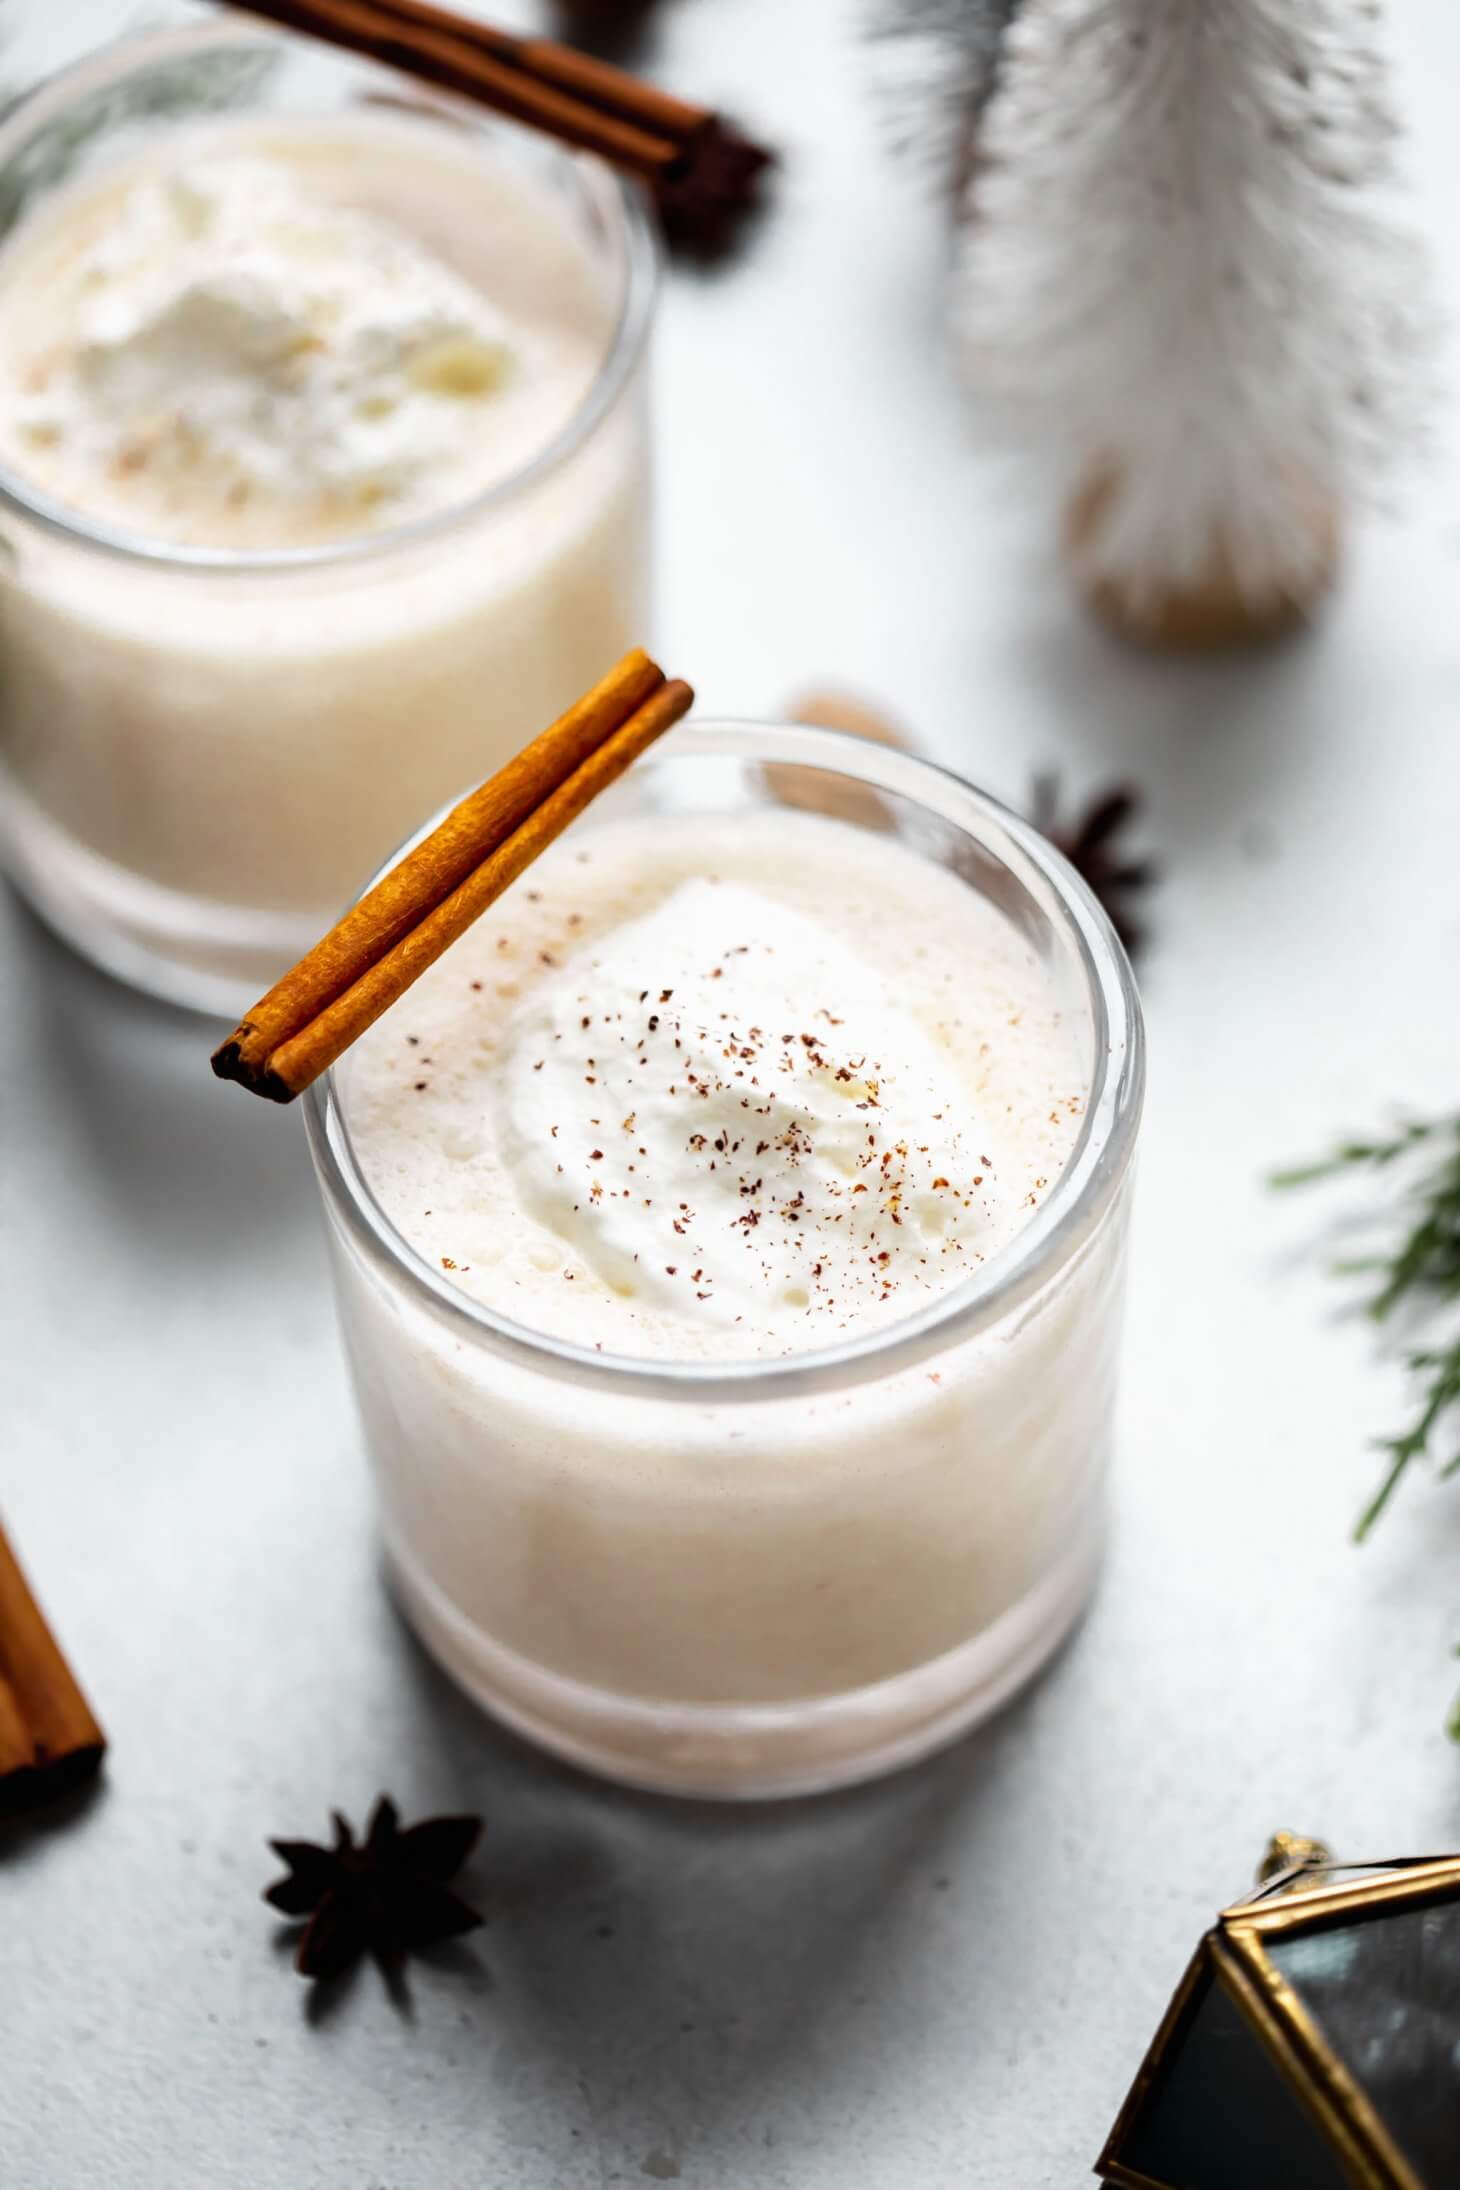 Two glasses of eggnog topped with whipped cream and sprinkle of nutmeg. Garnished with cinnamon stick.